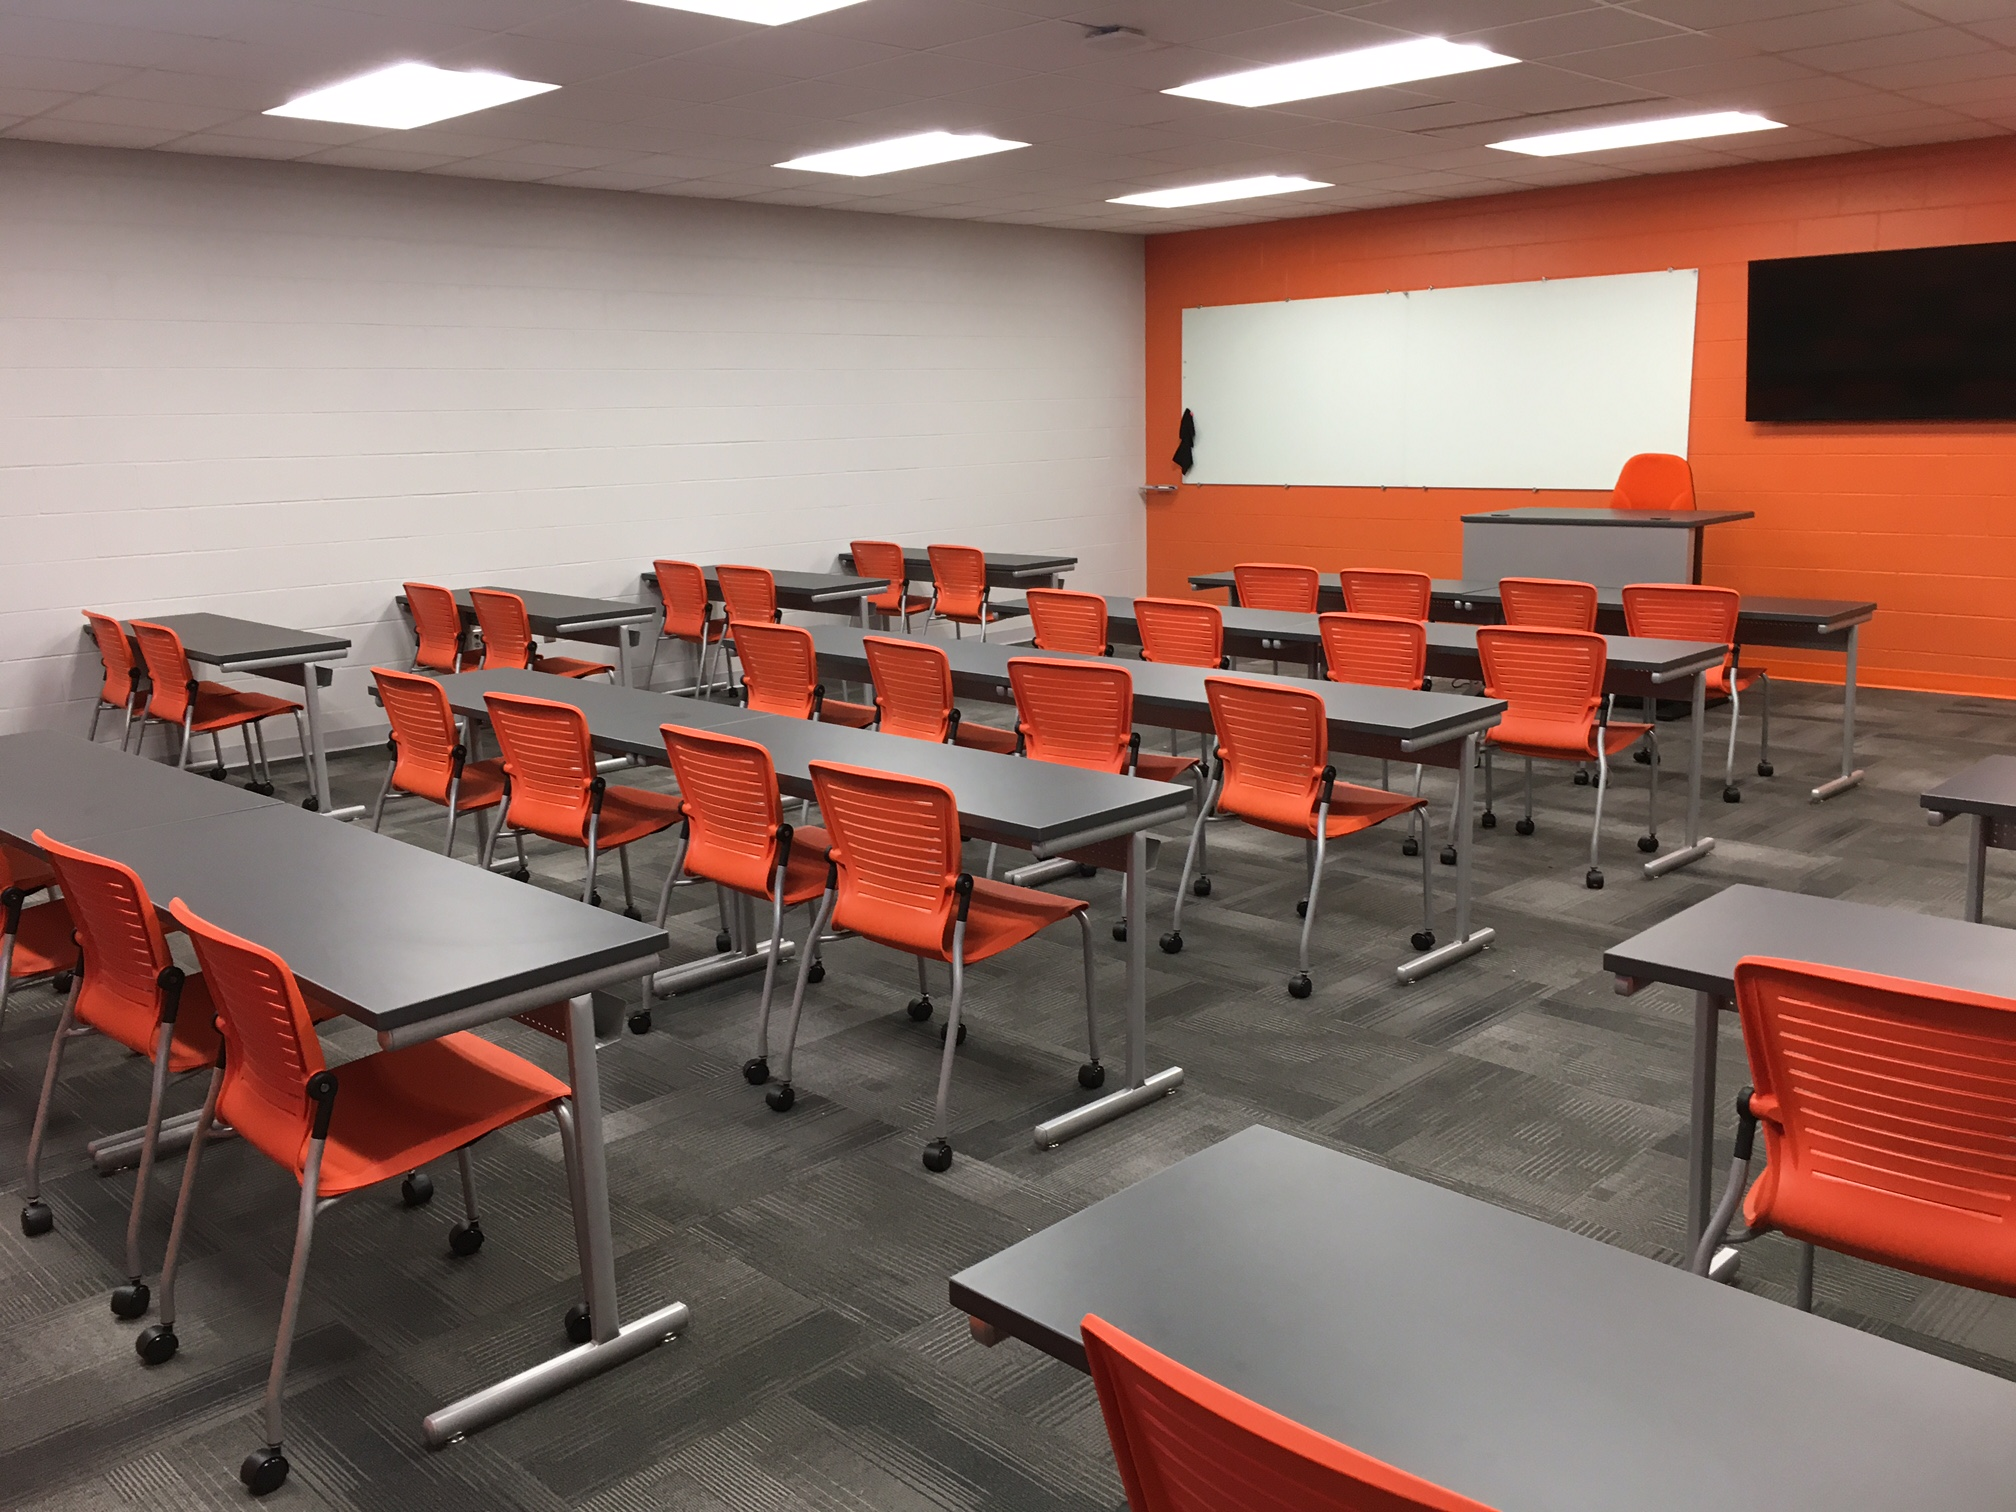 Jacksonville State University - Active Learning Table Install Pic 8.JPG